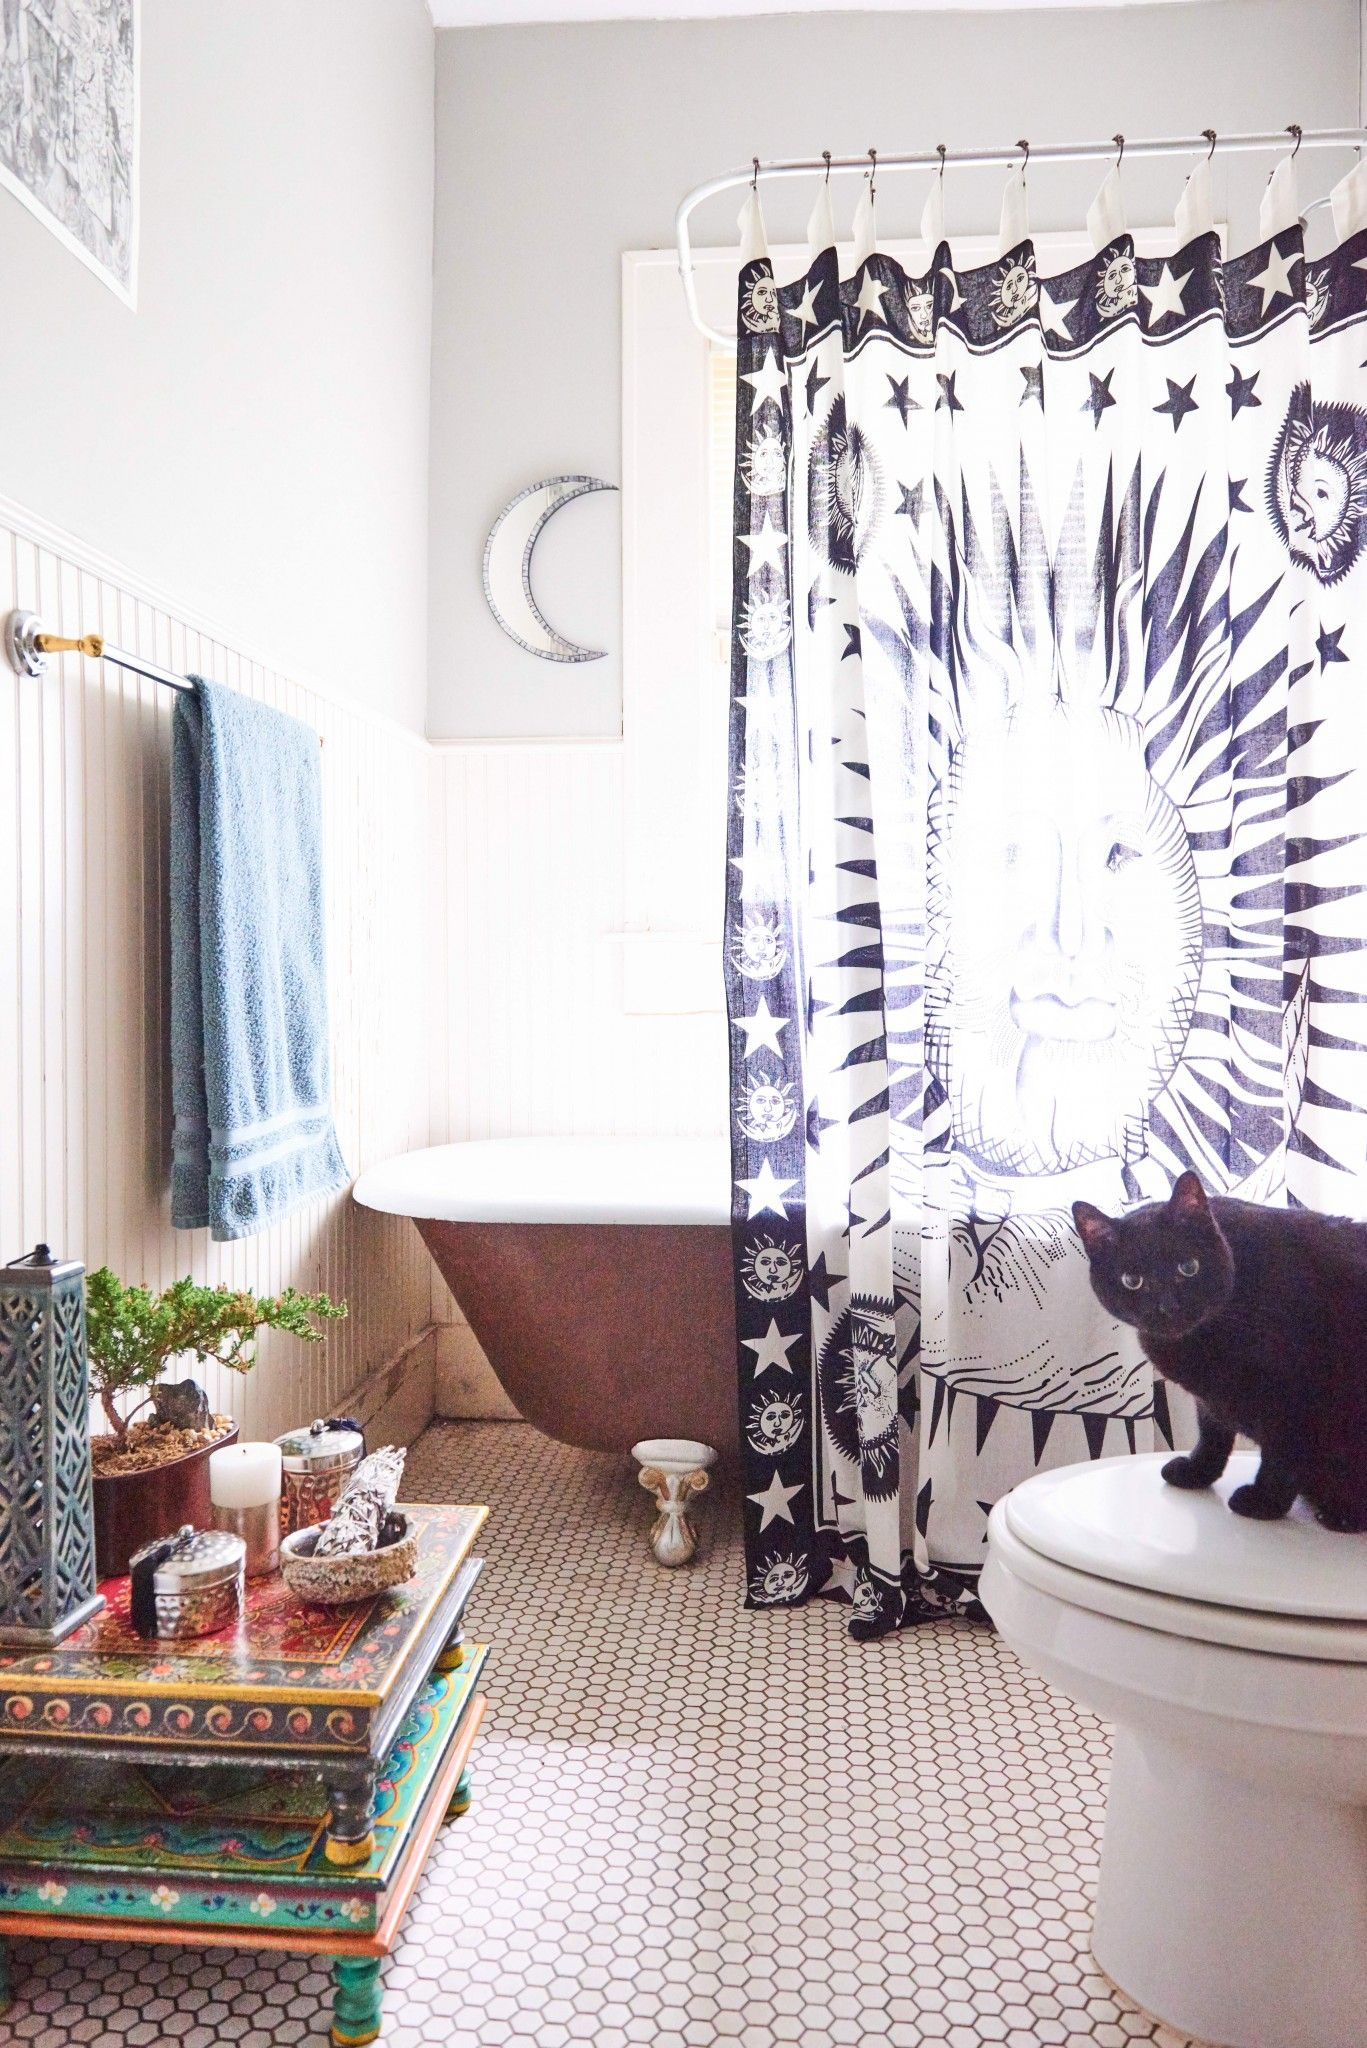 Bring The Celestial Bodies To Your Bathroom With This Celestial Shower Curtain Featuring A Sun Moon And S Earthy Home Decor Small Bathroom Decor Earthy Home